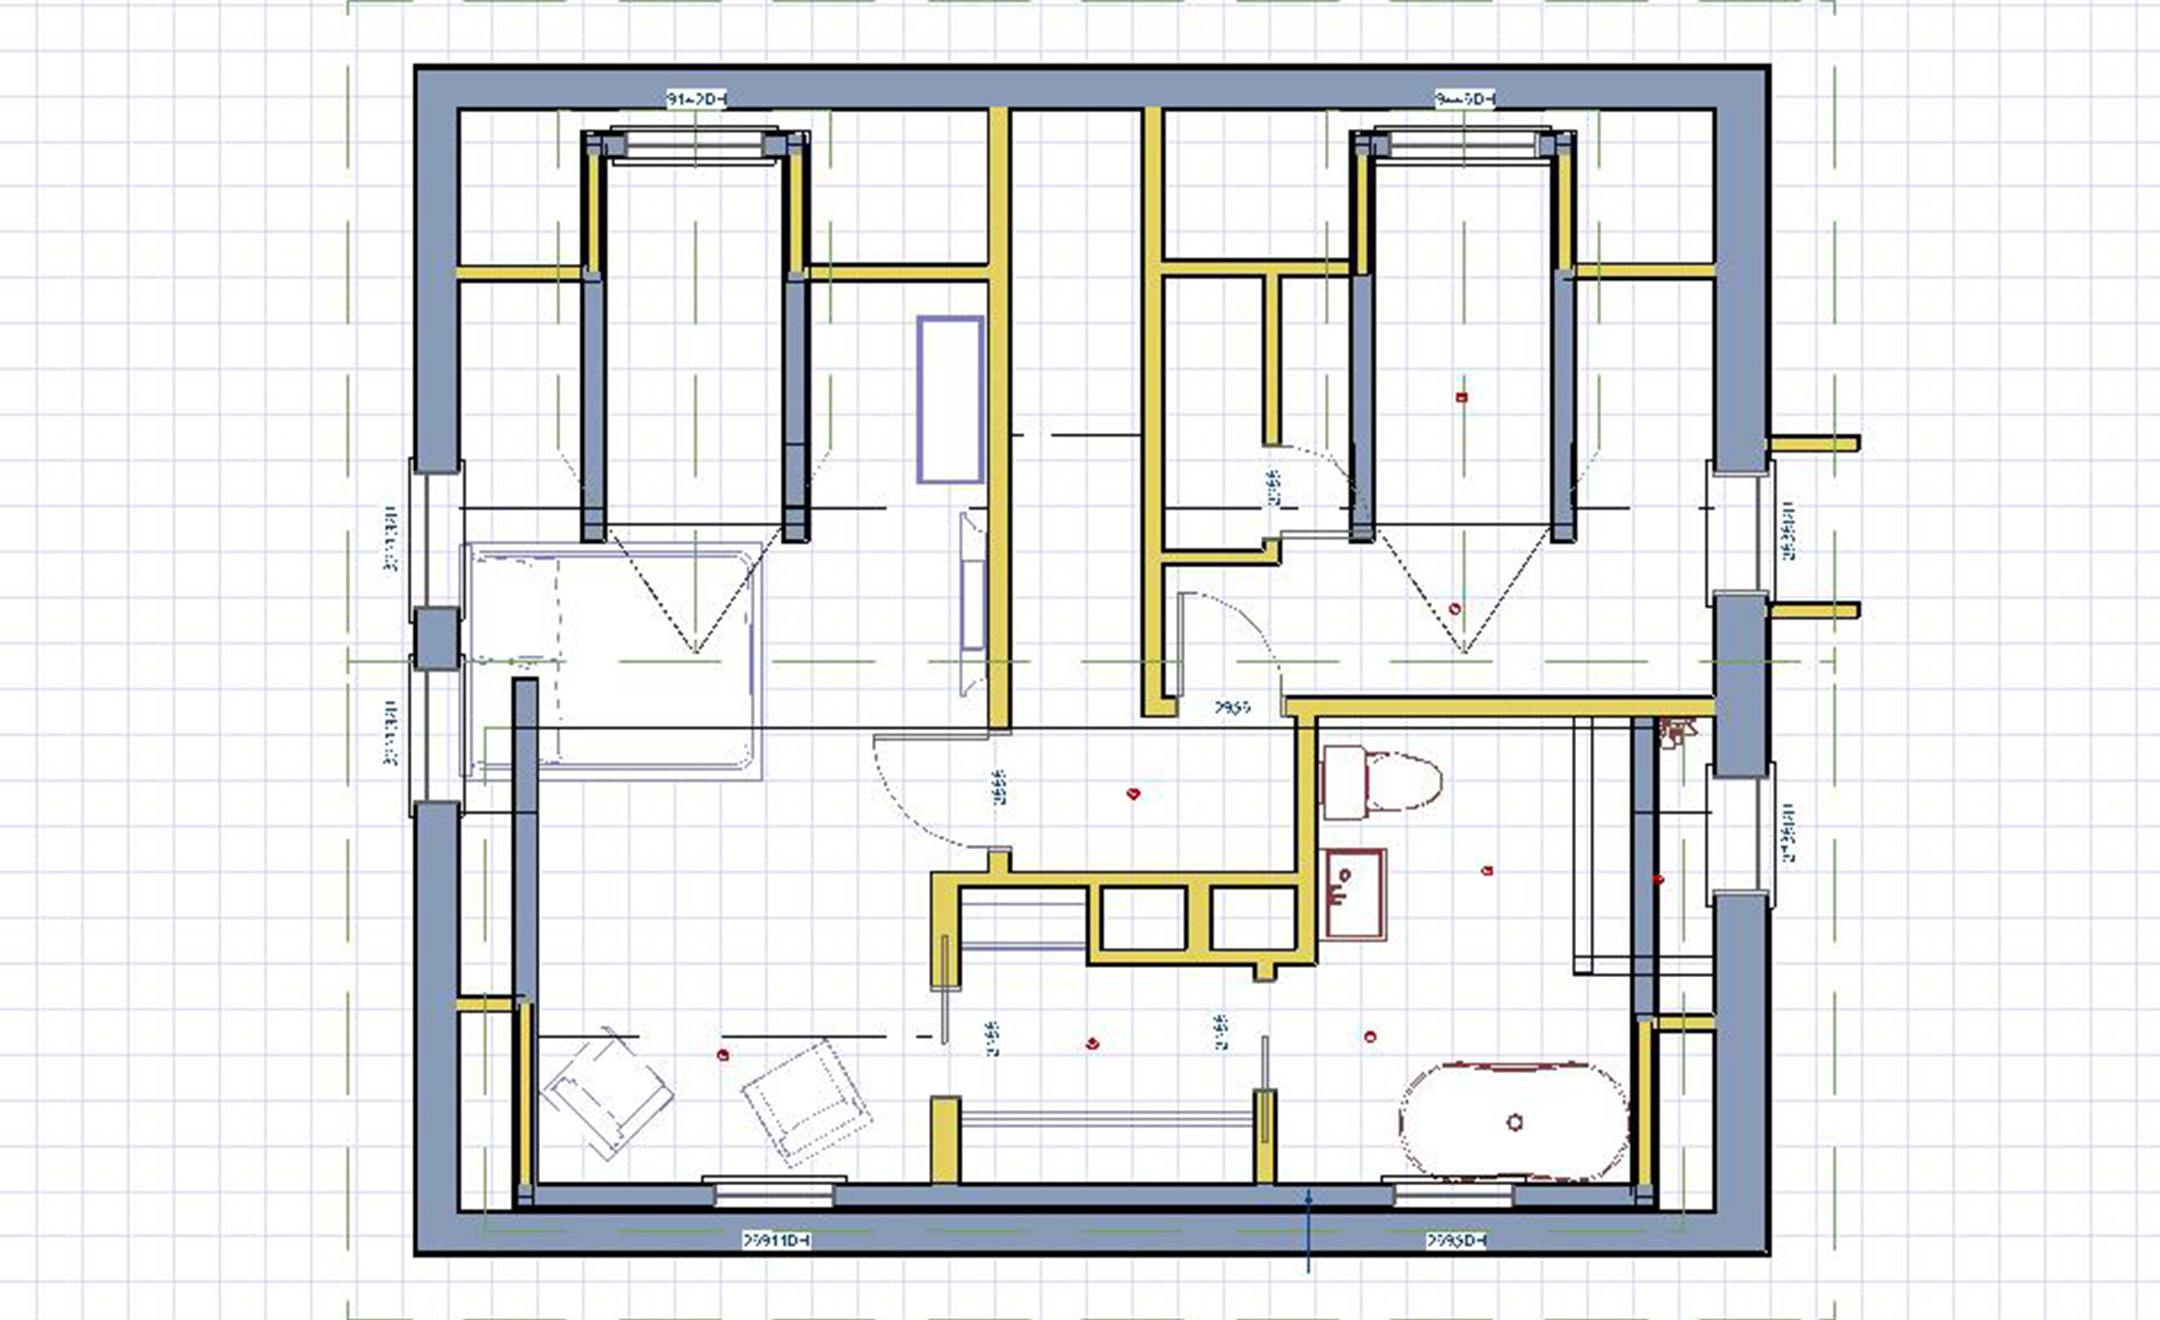 Fresh floor plans with pictures house floor ideas for Beach house designs living upstairs